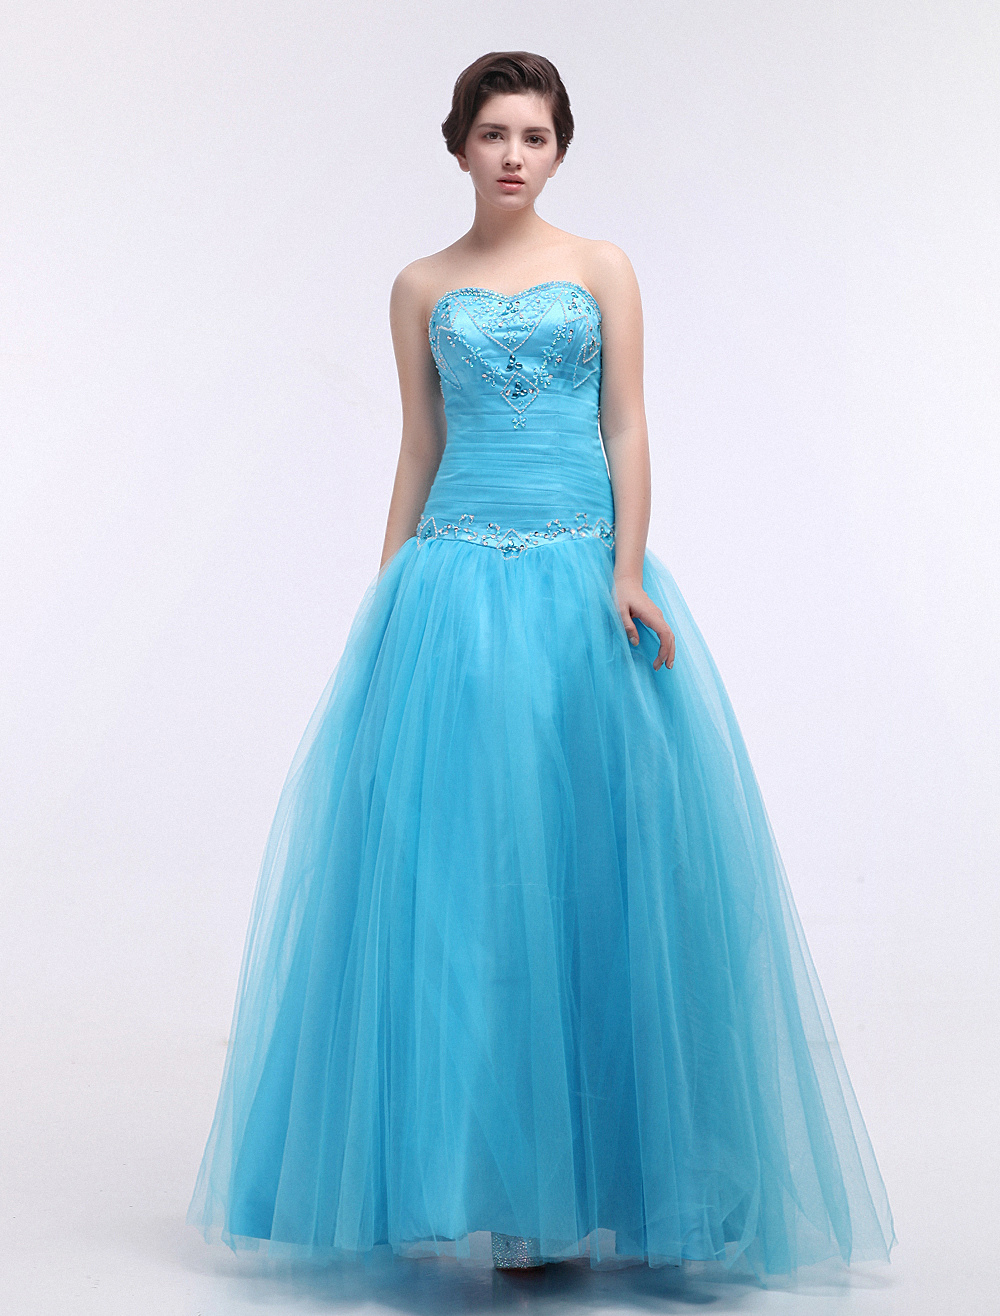 Tulle Quinceanera Dress Ball Gown Aqua Sweetheart